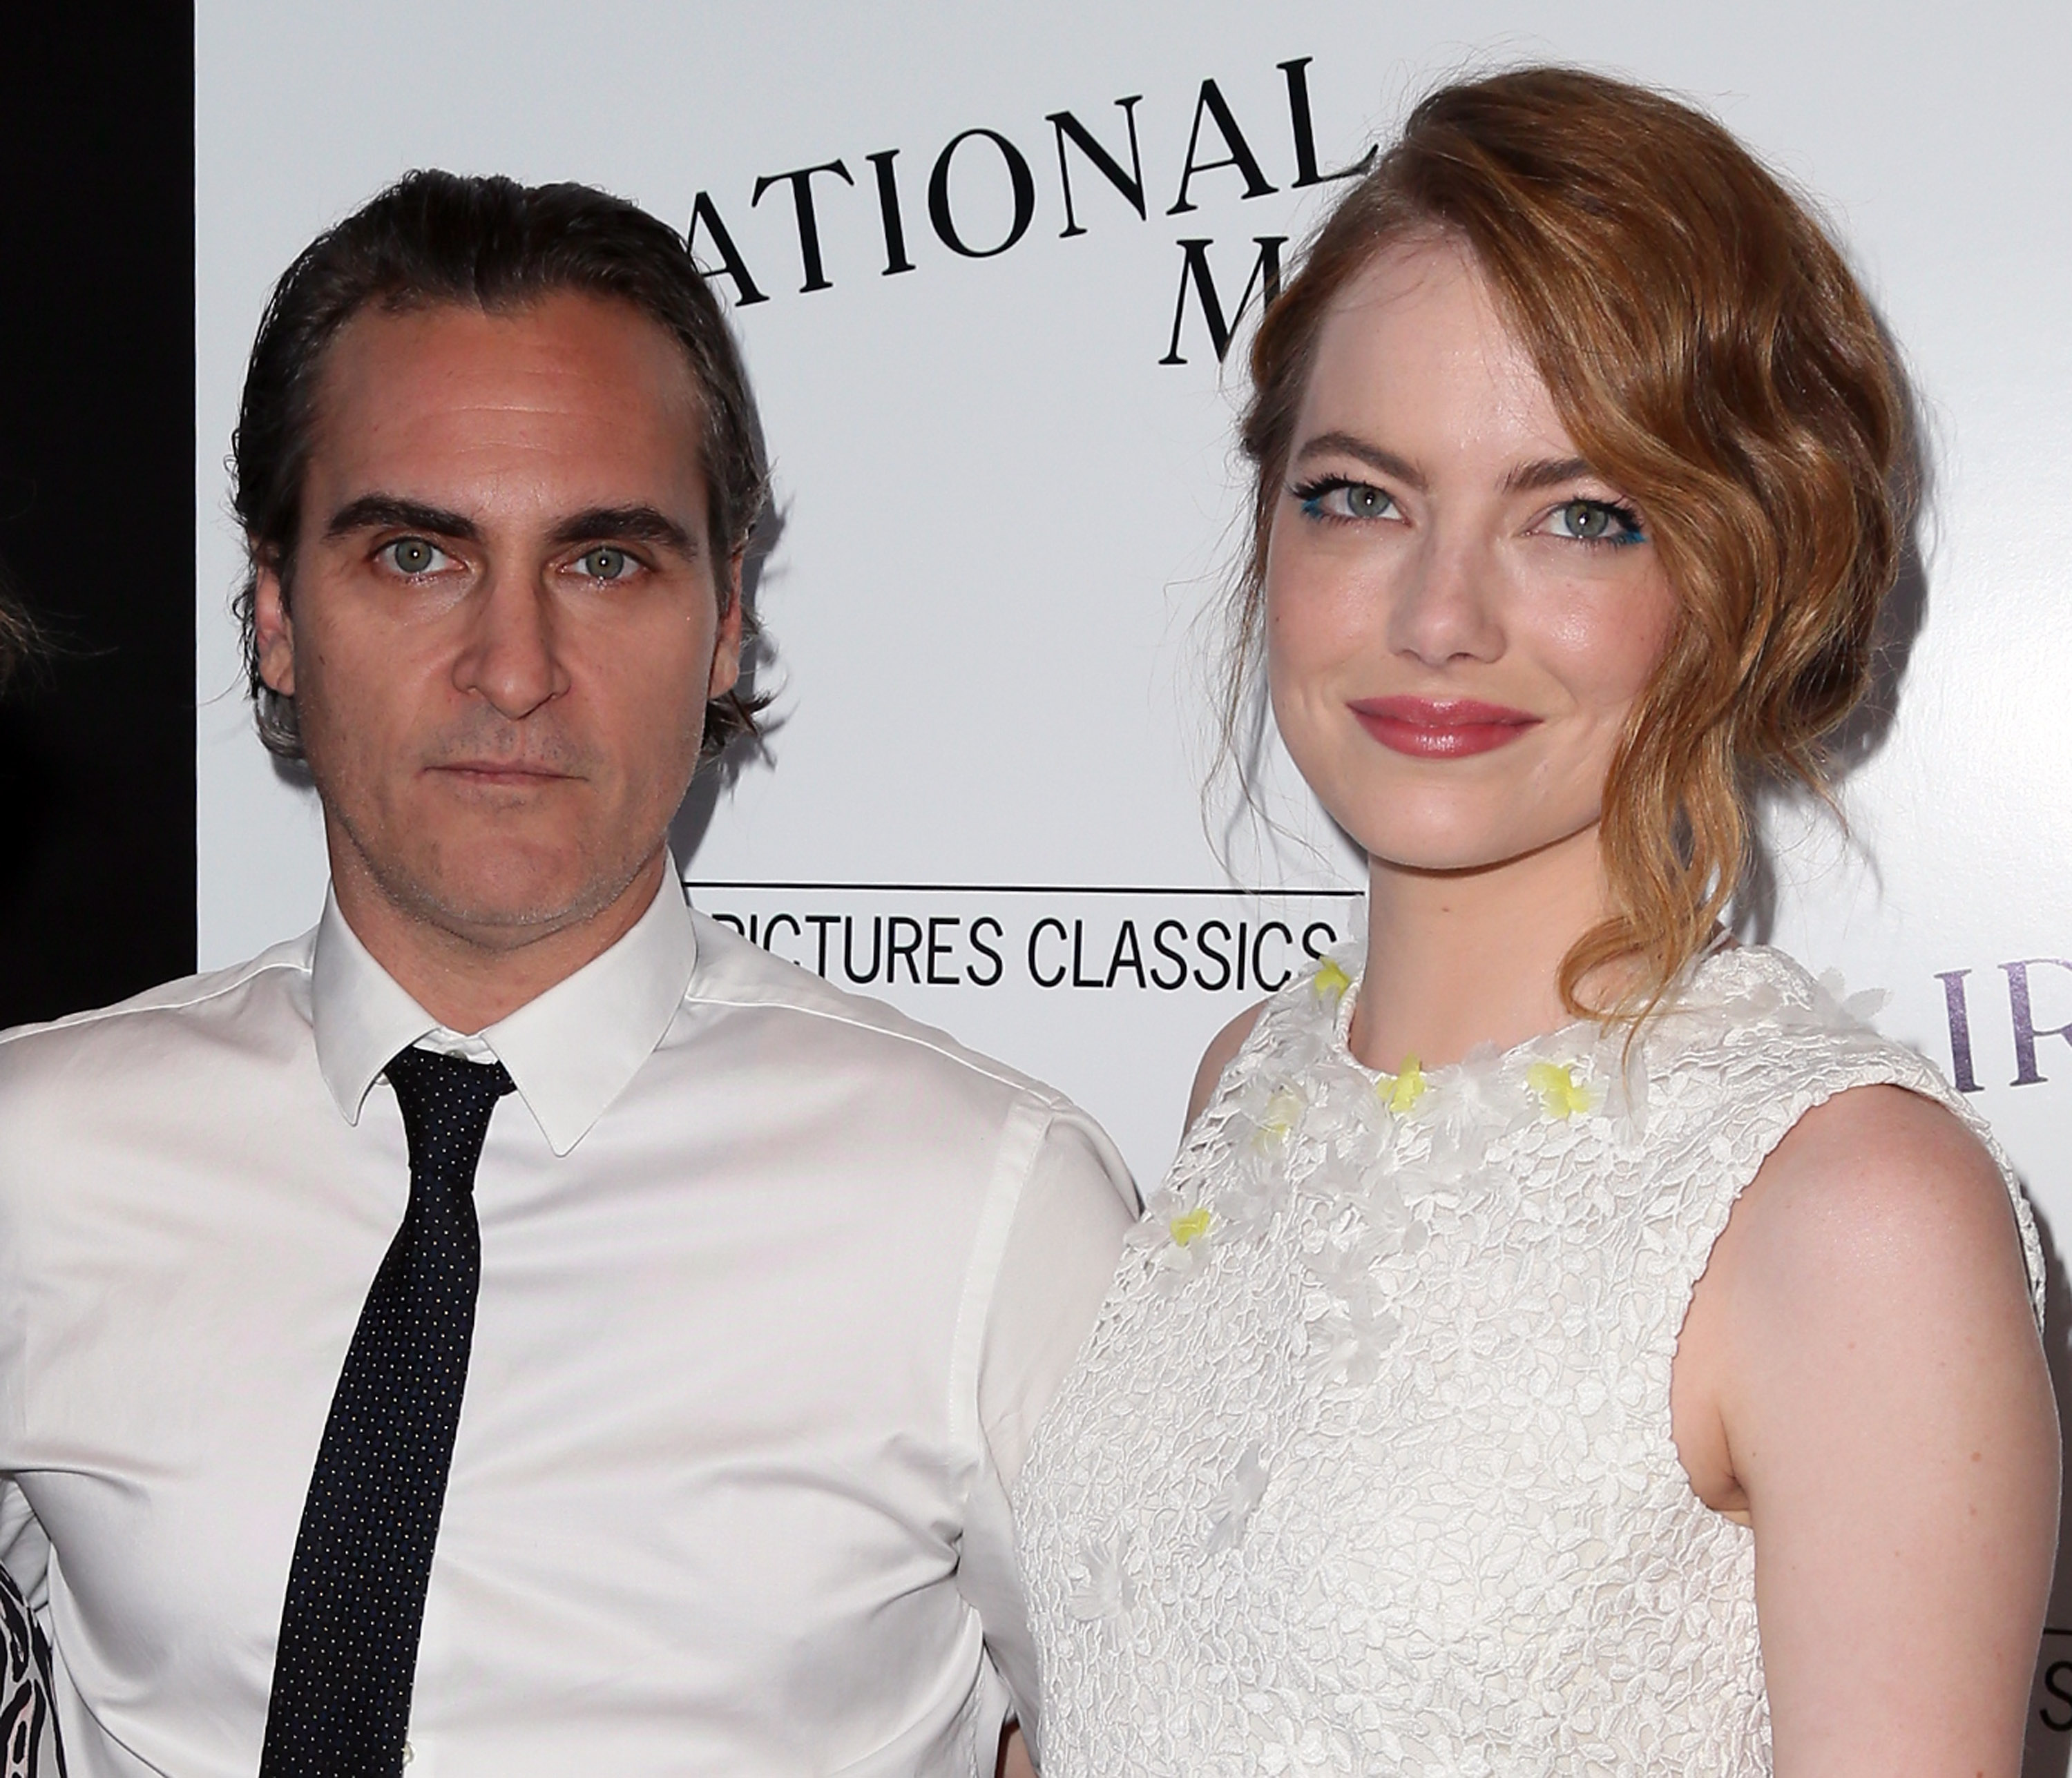 Joaquin Phoenix and Emma Stone attend the premiere of  Irrational Man  in Los Angeles on July 9, 2015.